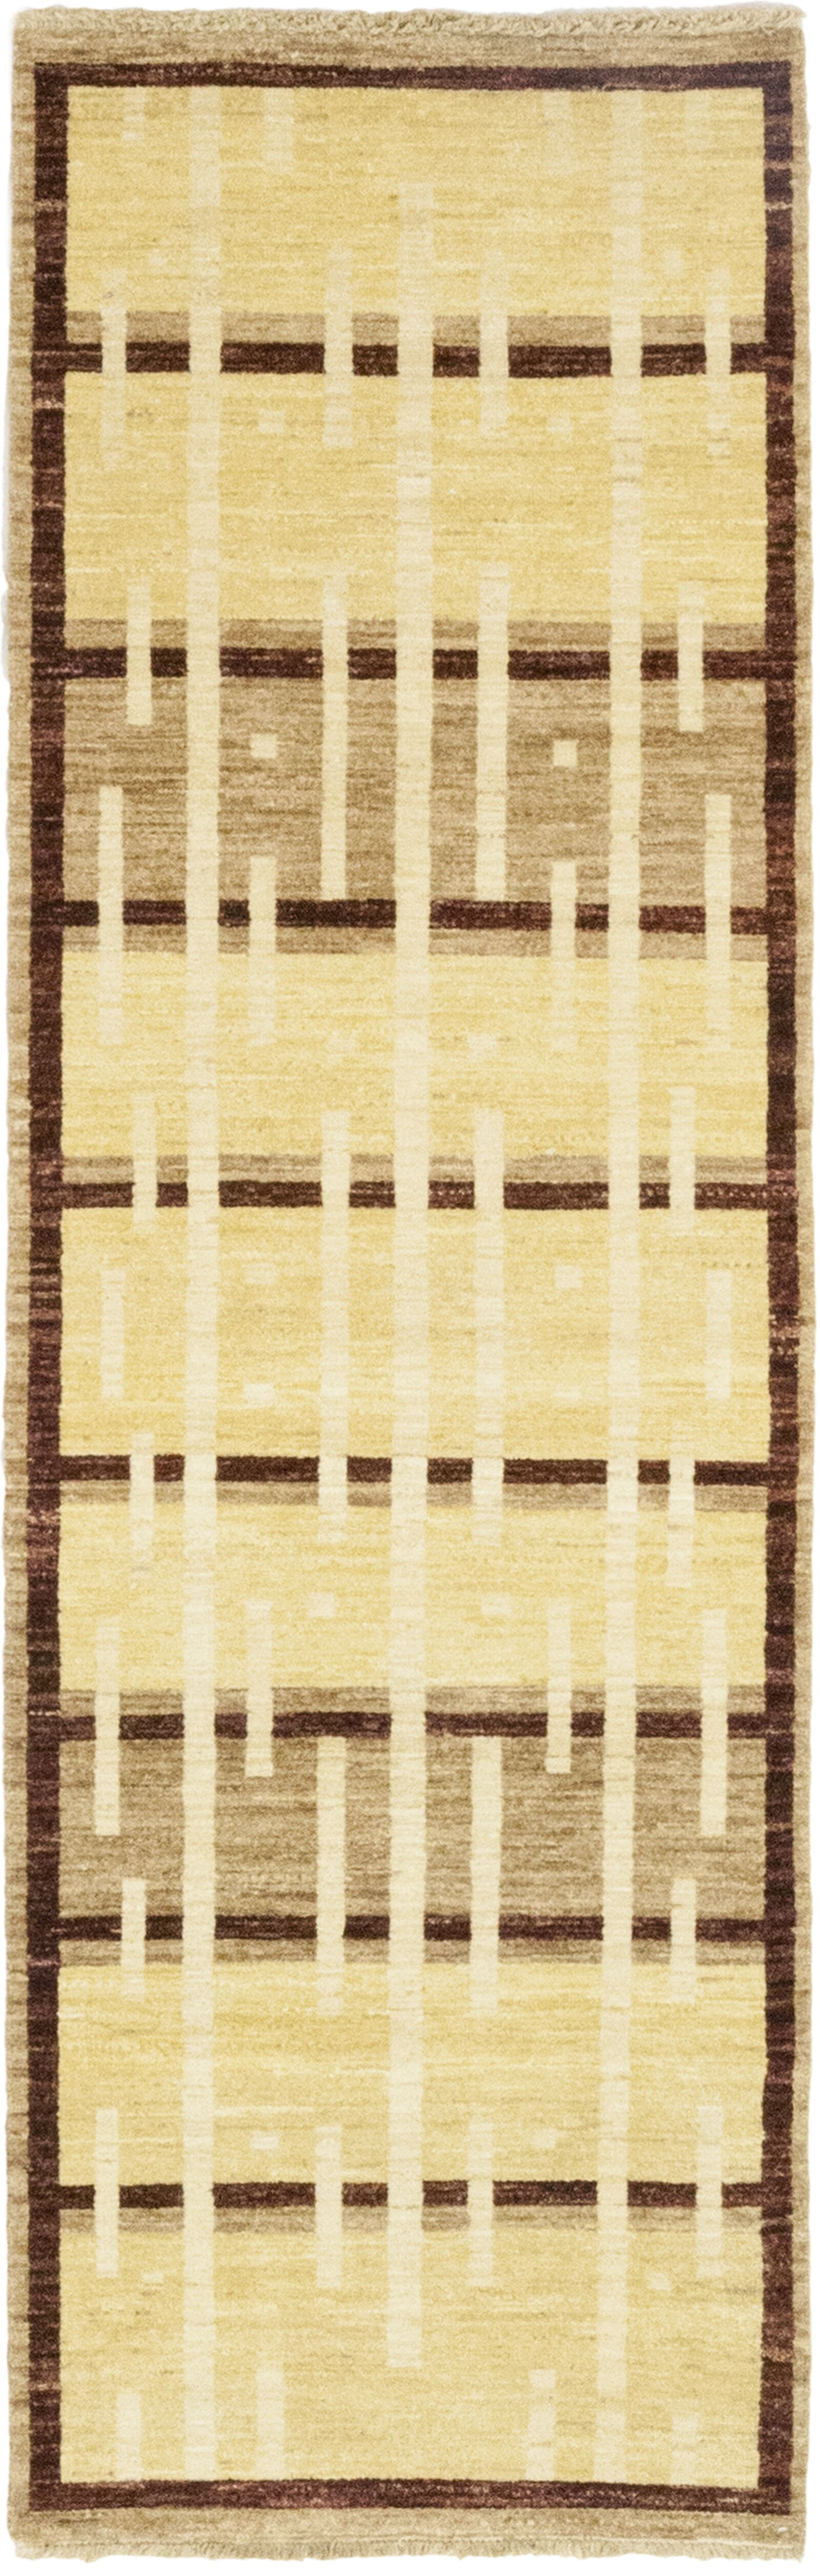 One-of-a-Kind Bieber Hand-Knotted Wool Beige/Brown Indoor Area Rug